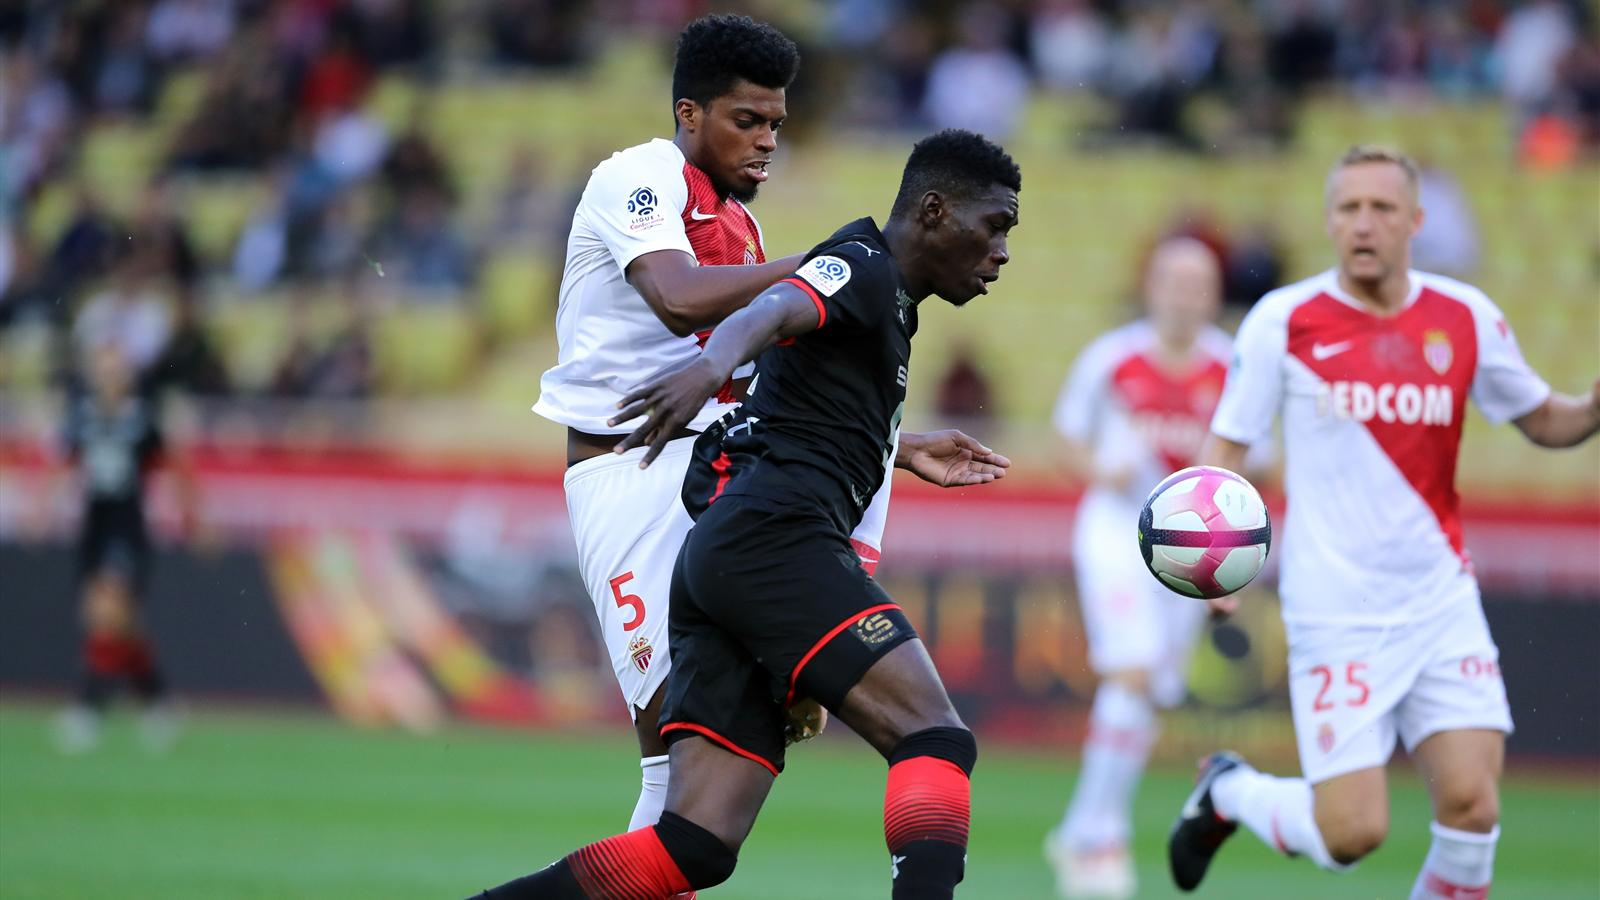 Ligue 1 monaco rennes en direct ligue 1 2018 2019 football eurosport - Resultat coupe de la ligue en direct ...